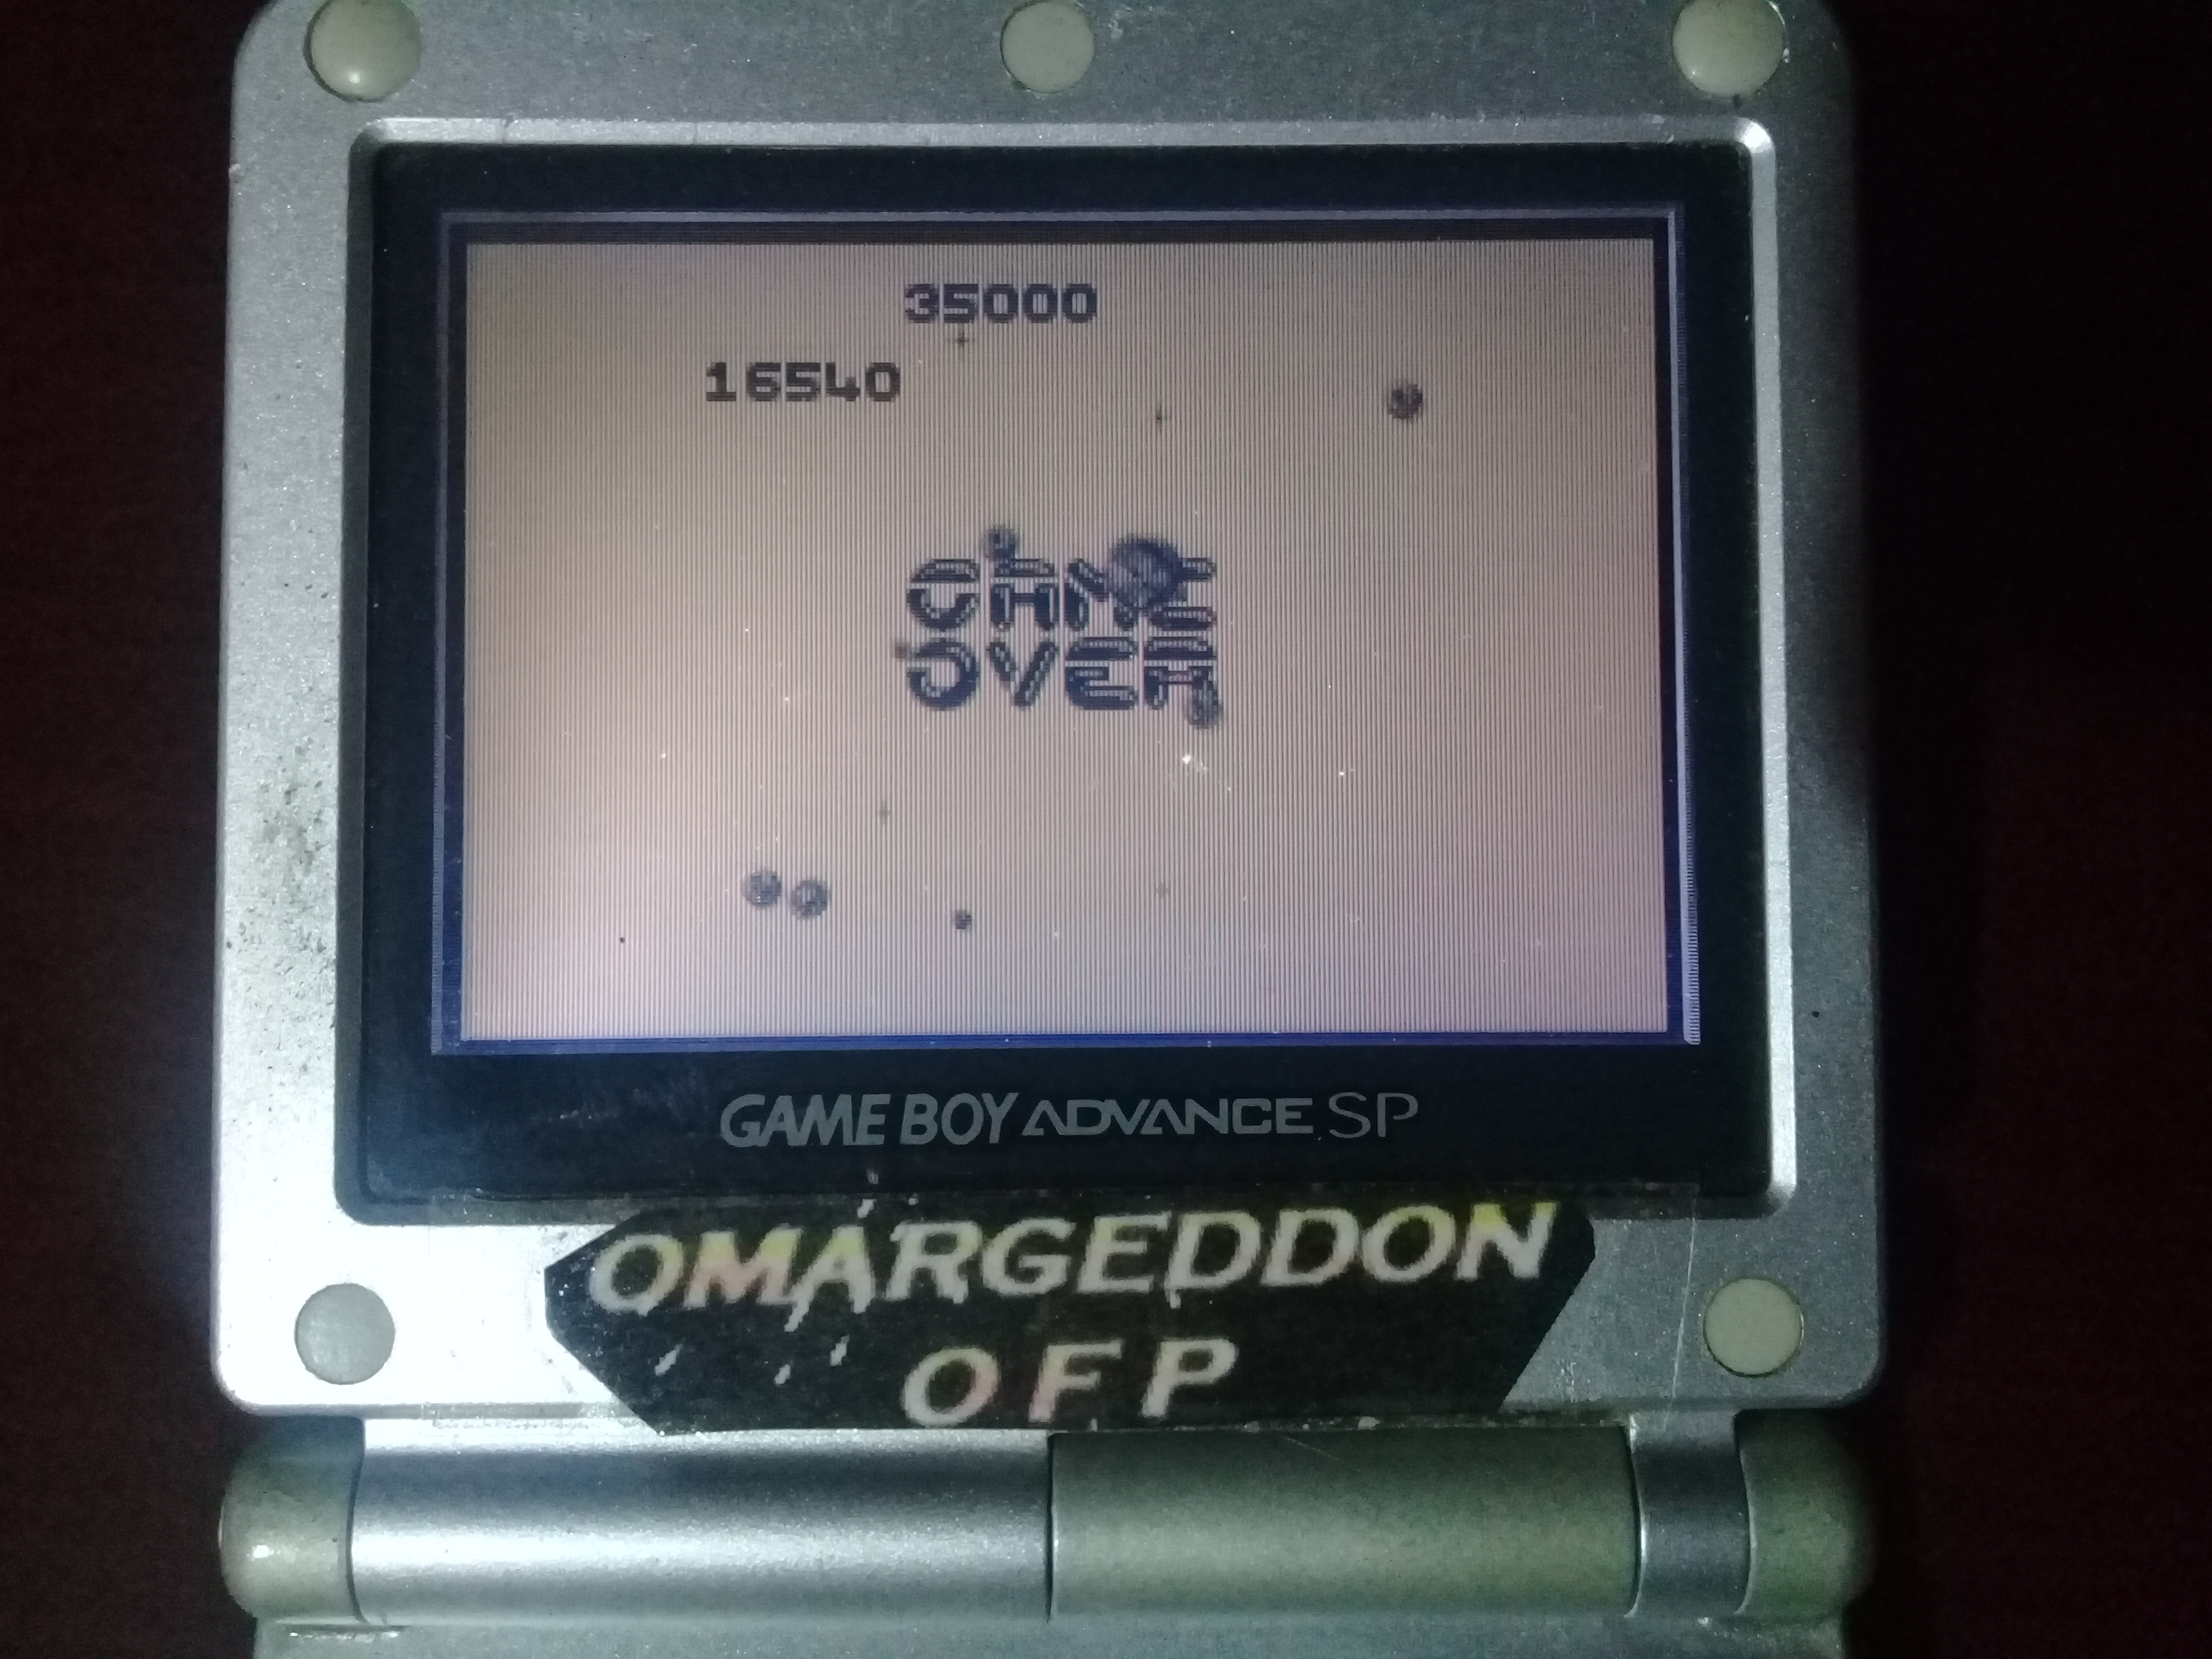 omargeddon: Asteroids [Difficulty 2] (Game Boy) 16,540 points on 2019-01-12 16:56:36